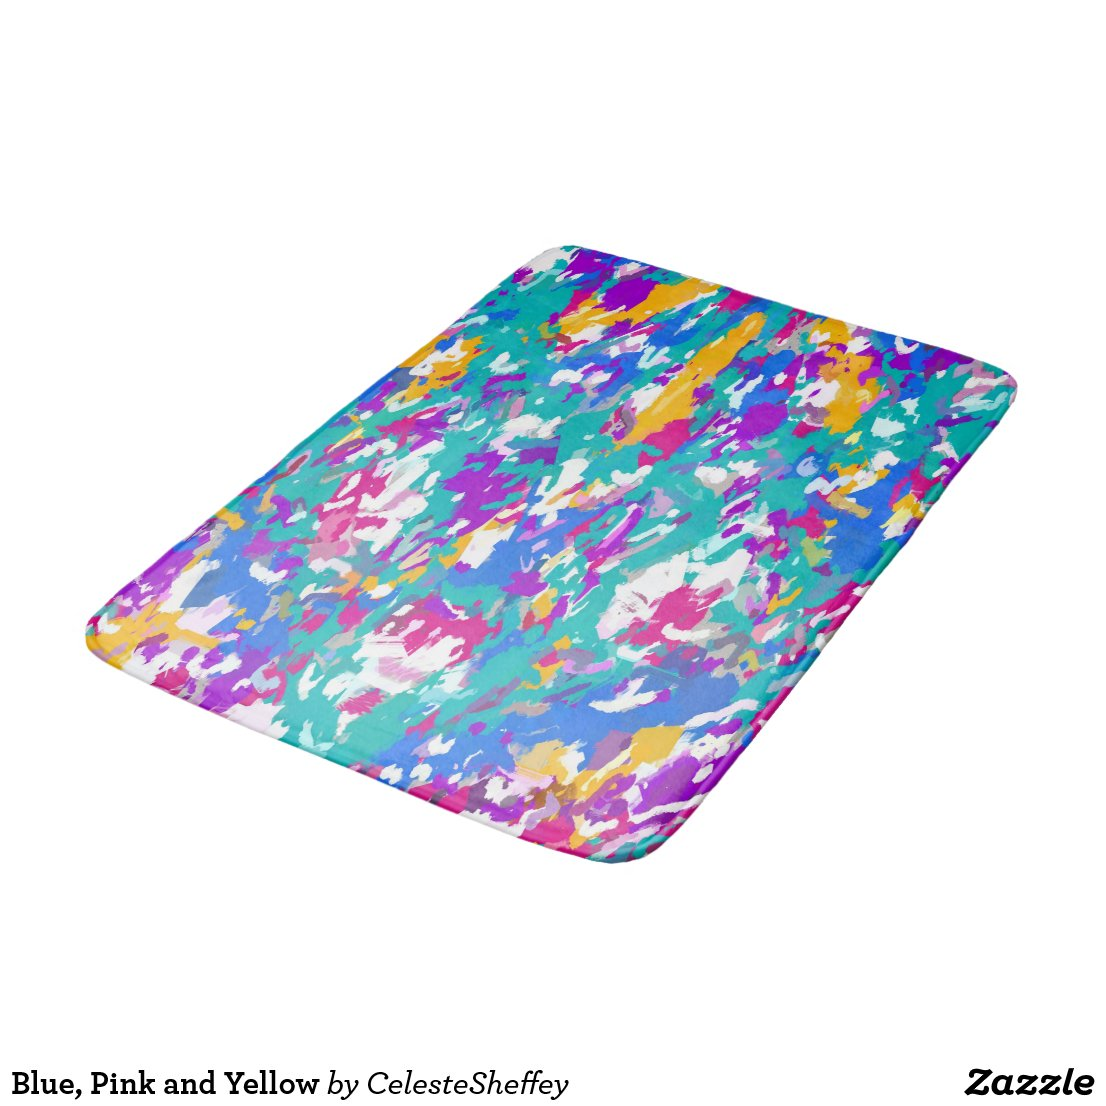 Robin's Egg Blue and Fuchsia Spin Art 3987 Bath Mat